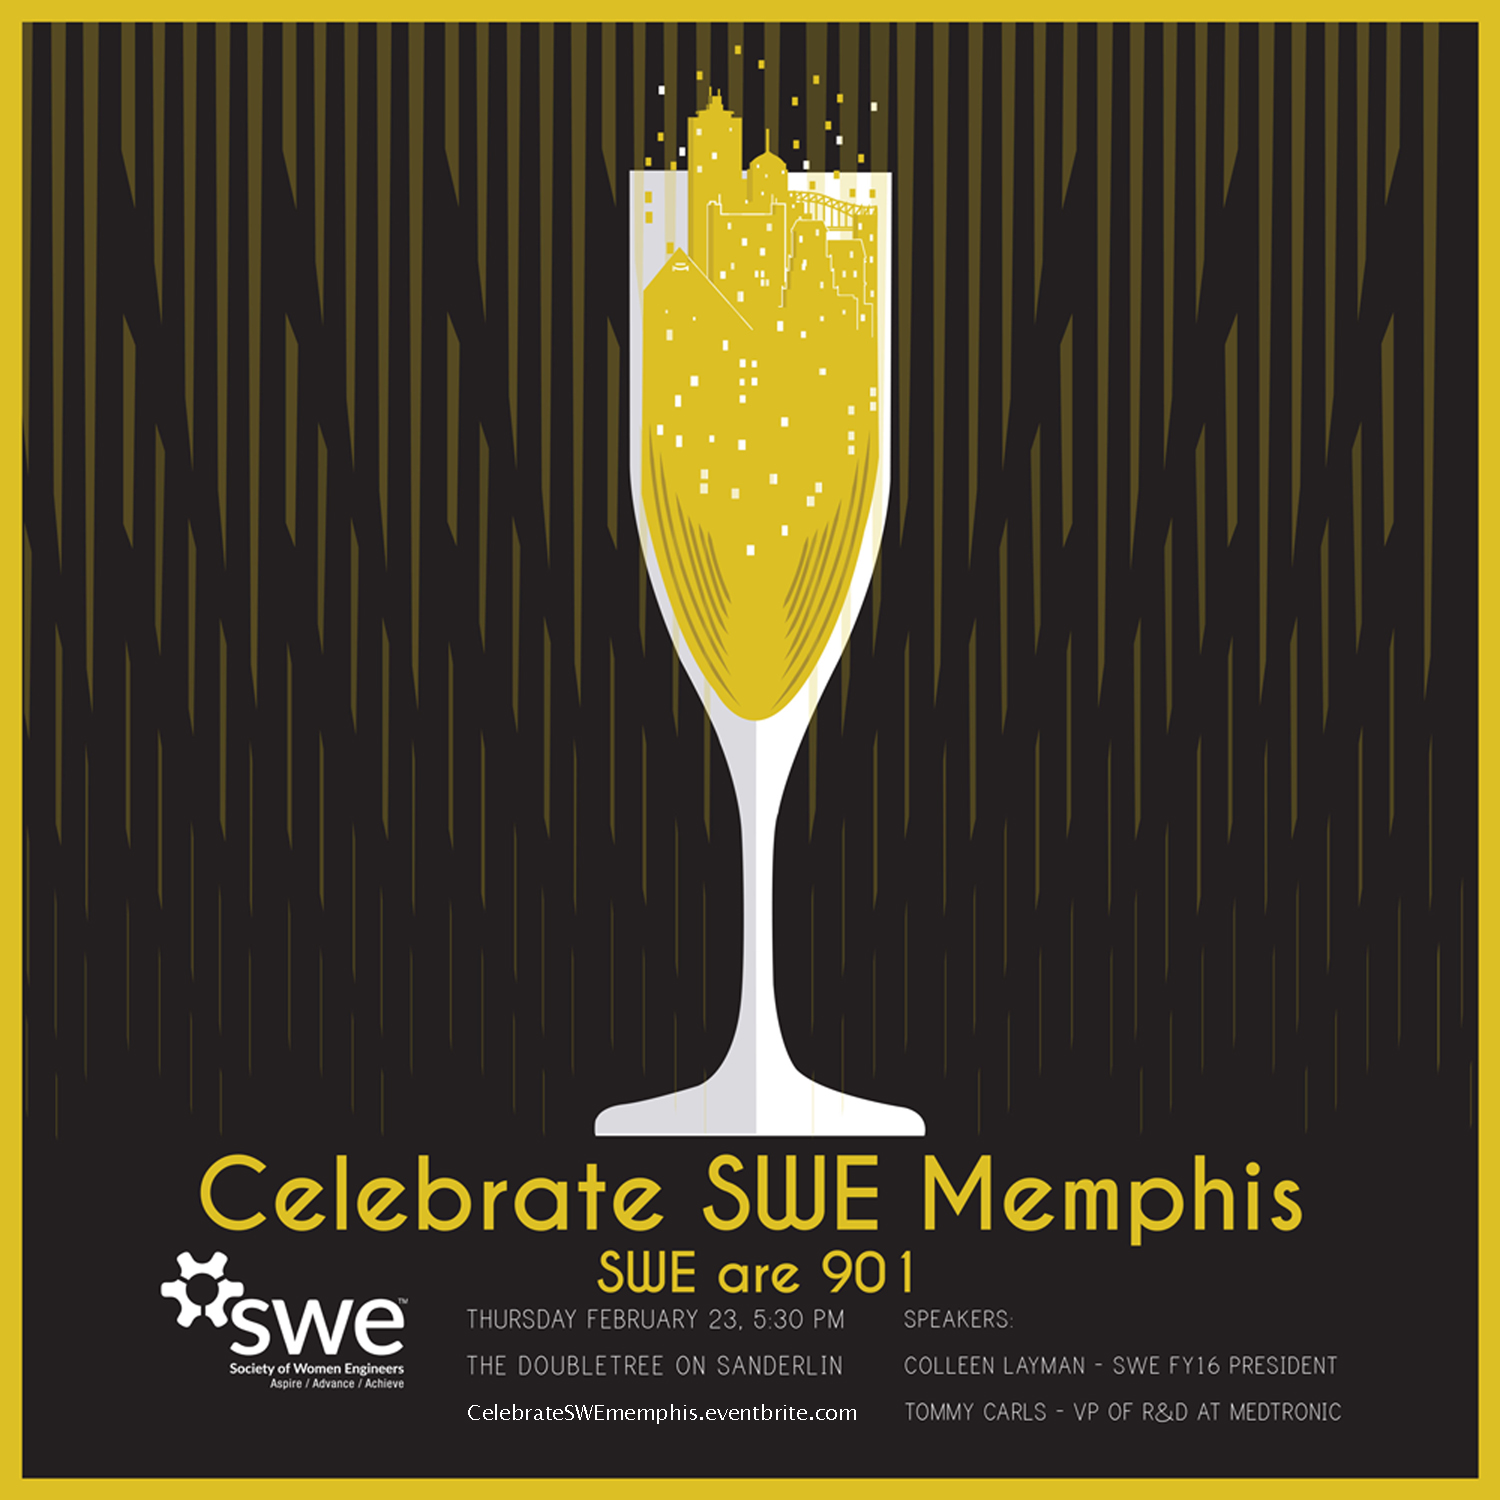 Celebrate SWE Memphis flyer